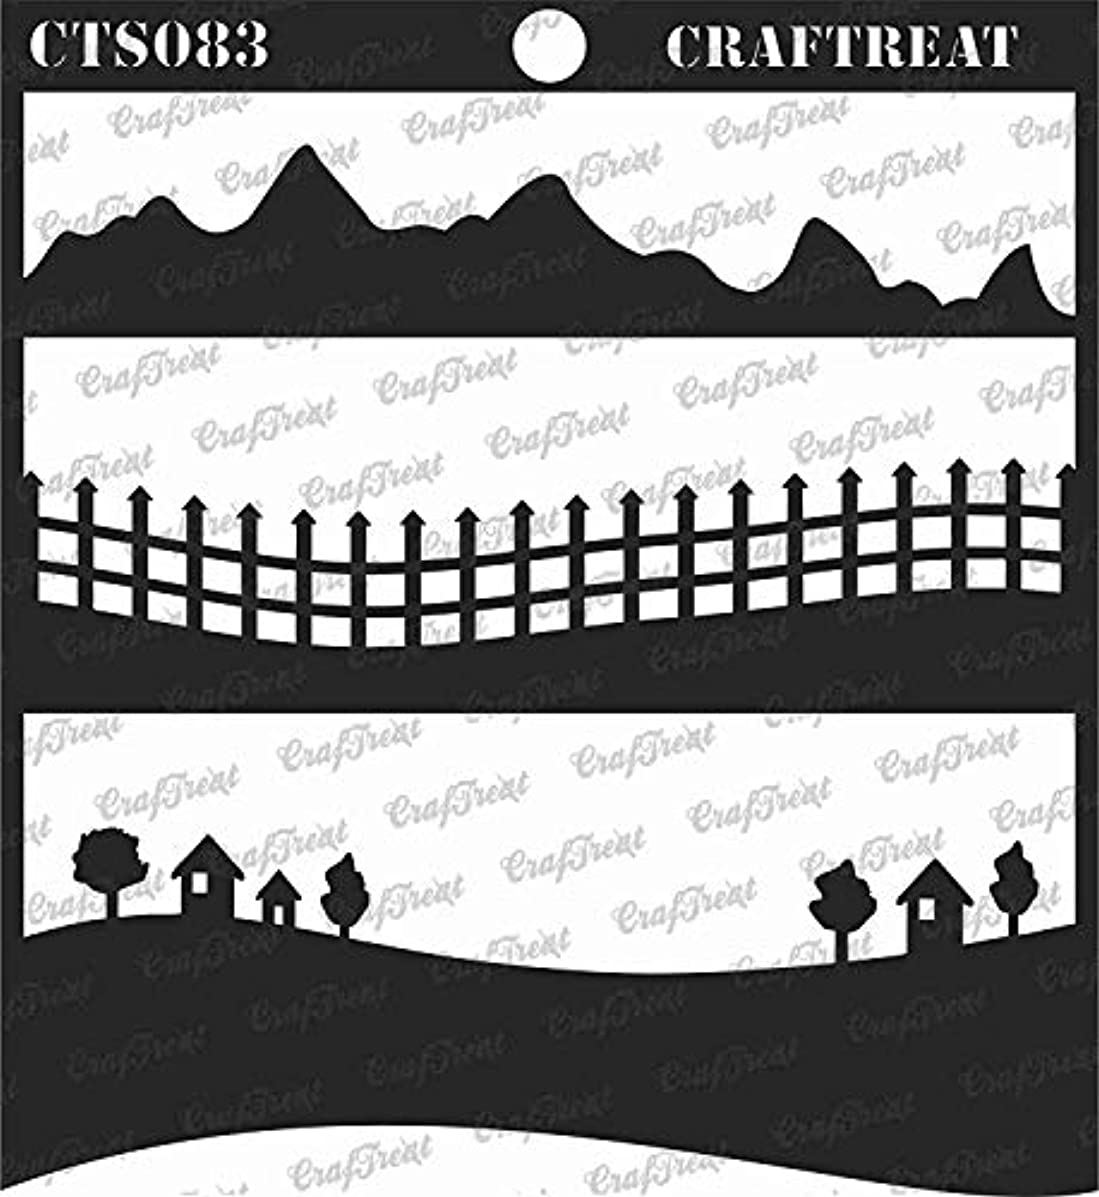 CrafTreat Stencil - Landscapes   Reusable Painting Template for Journal, Notebook, Home Decor, Crafting, DIY Albums, Scrapbook and Printing on Paper, Floor, Wall, Tile, Fabric, Wood 6